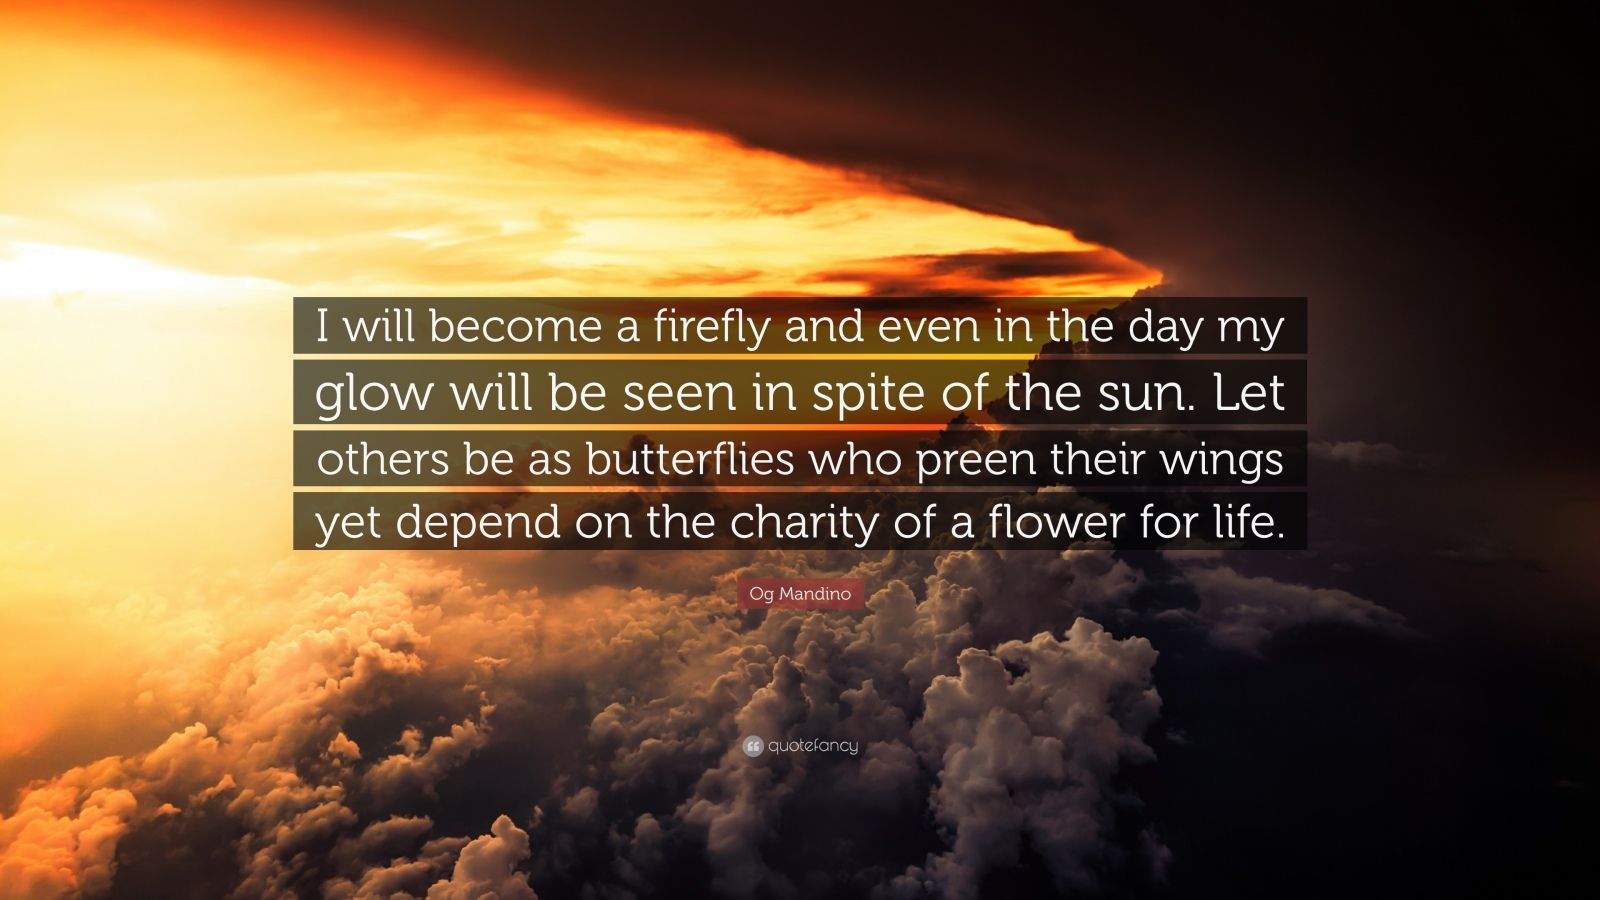 "Og Mandino Quote: ""I will become a firefly and even in the day my glow will be seen in spite of the sun. Let others be as butterflies who preen their wings yet depend on the charity of a flower for life."""